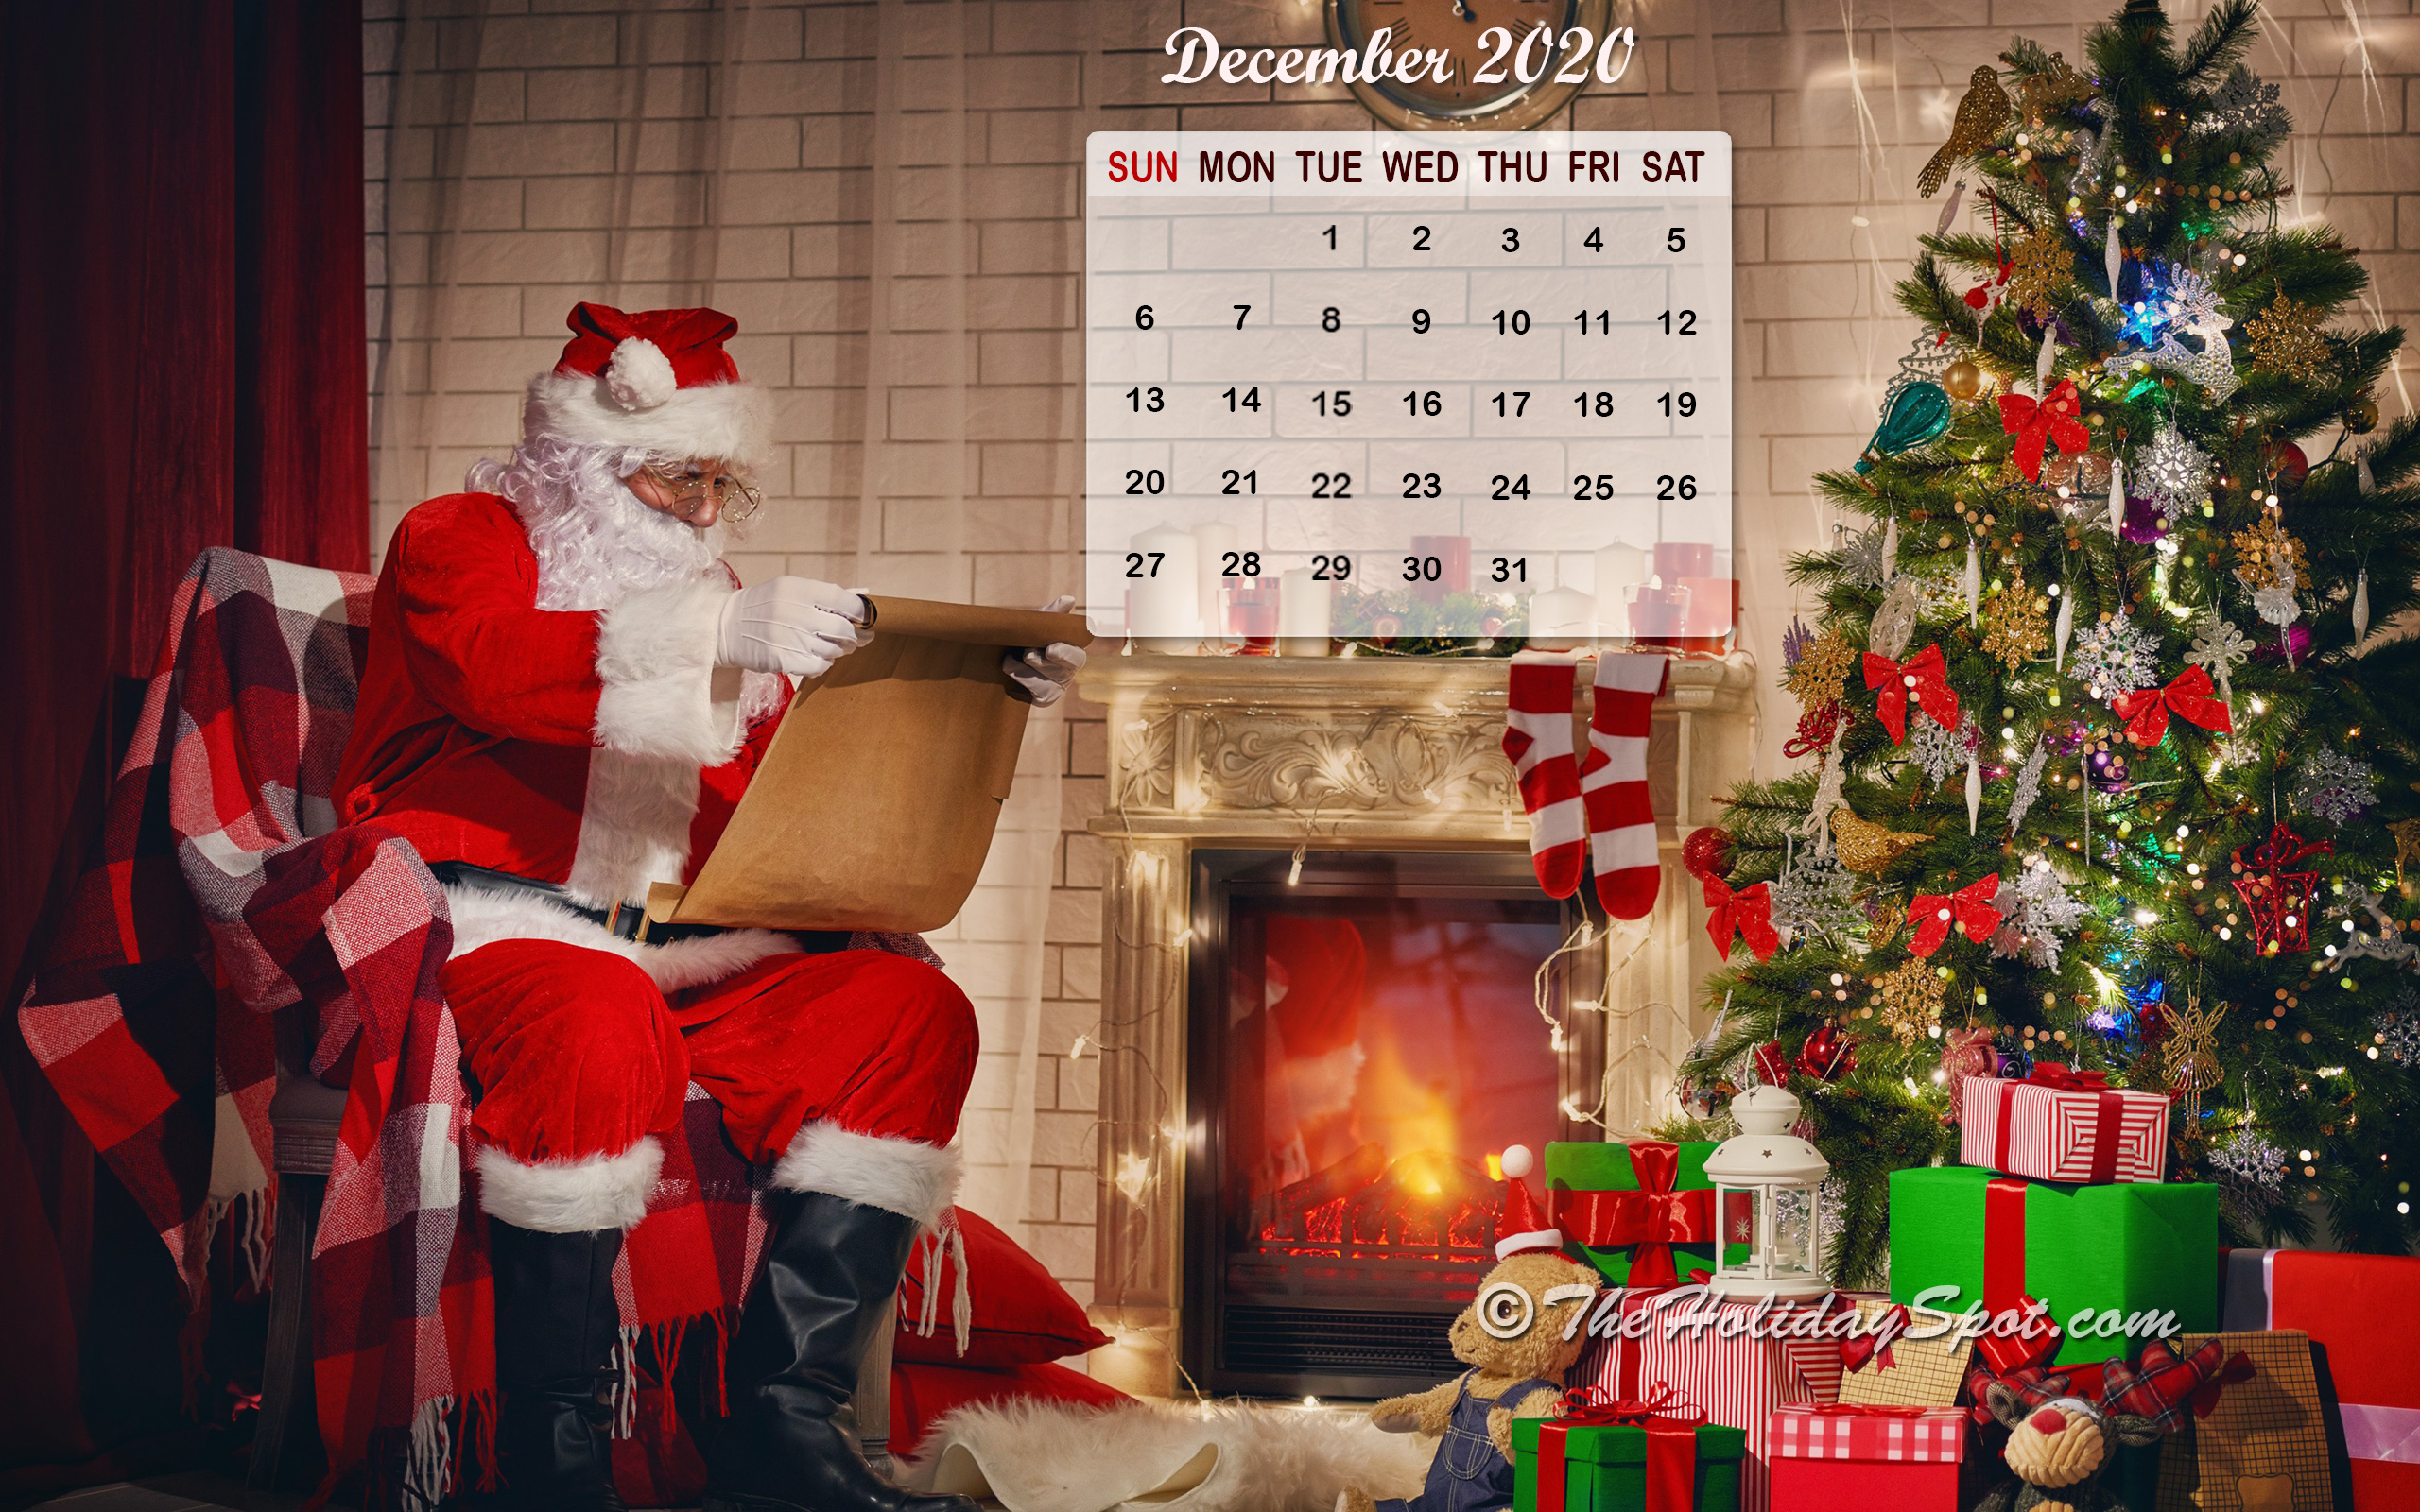 197 1972357 december calendar wallpaper 2020 with christmas theme december